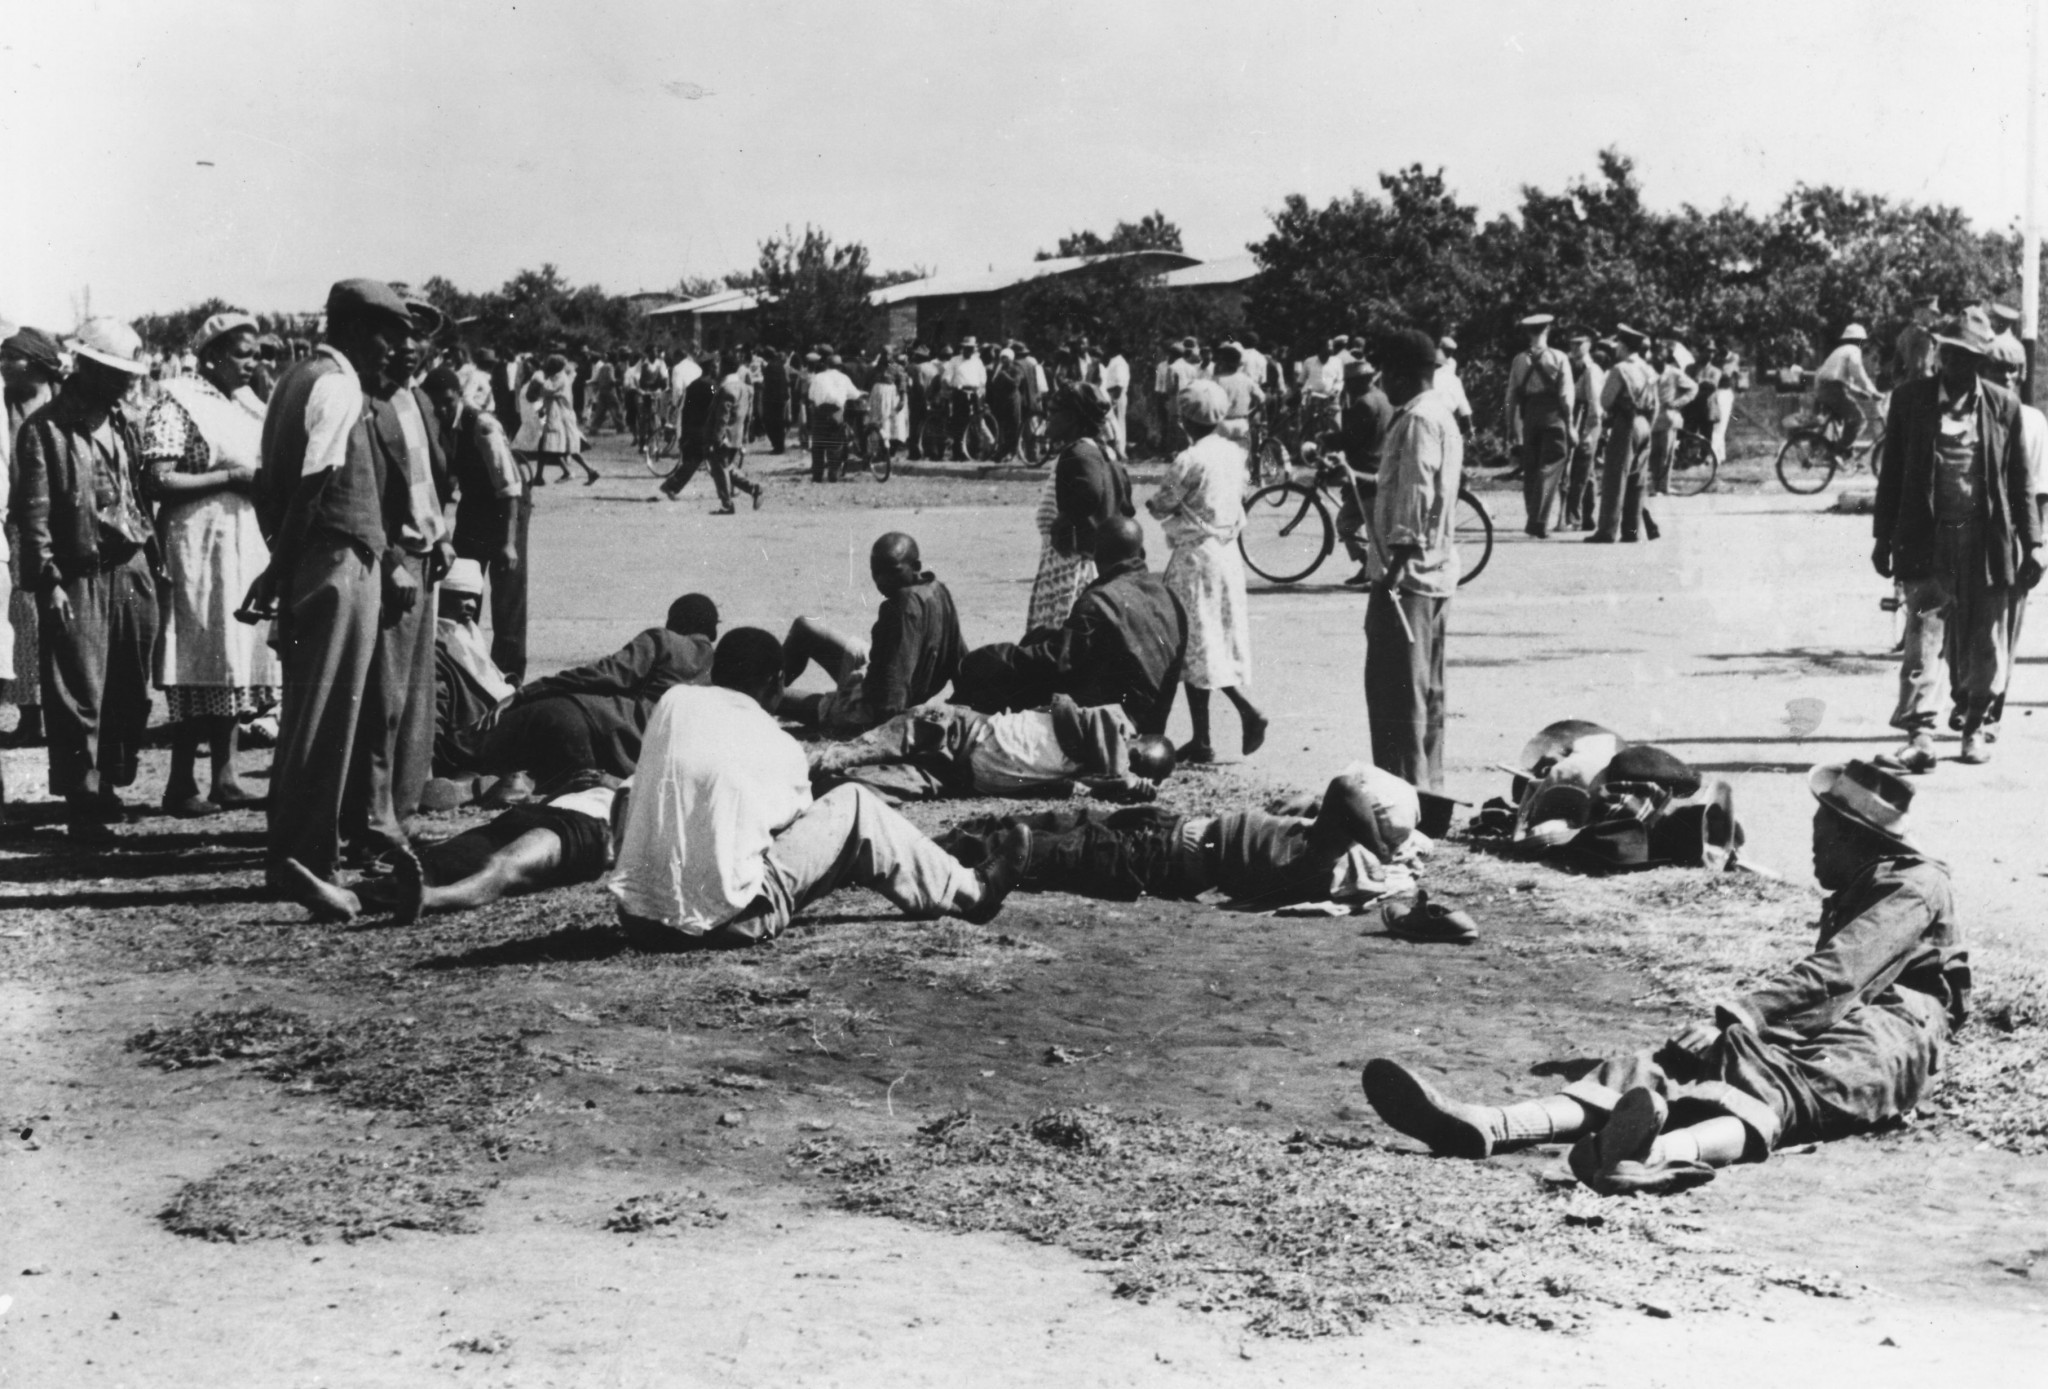 A massacre in Sharpeville in 1960 contributed to South Africa being excluded from future Olympic Games ©Getty Images